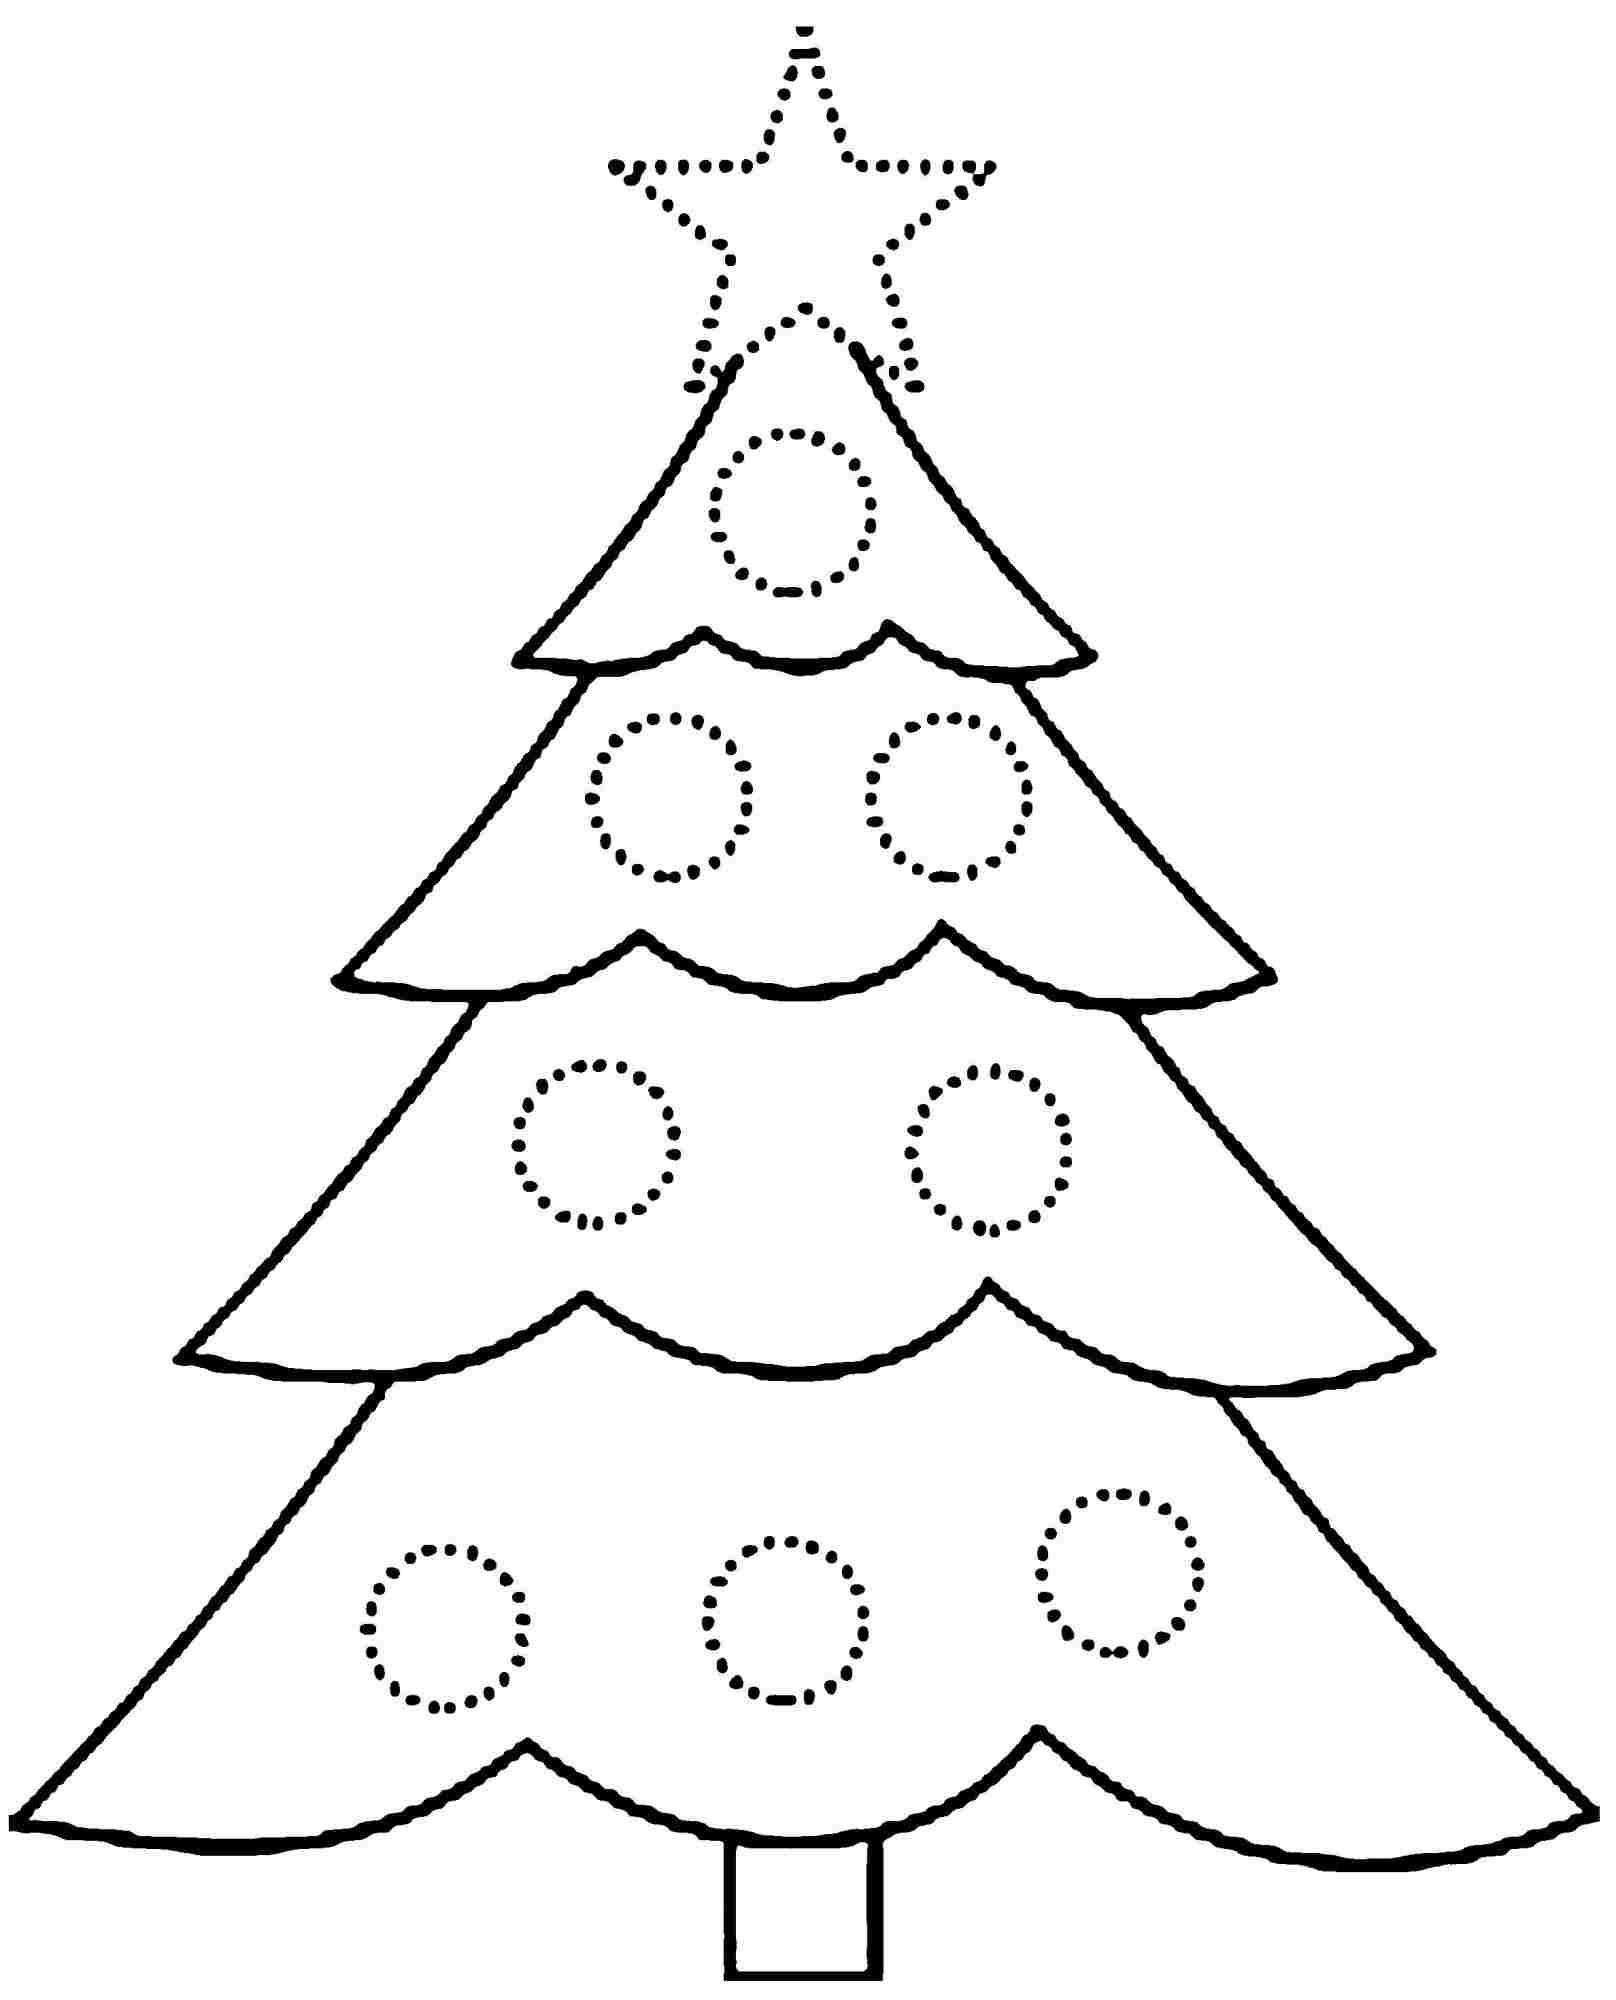 17 Unique Christmas Tree Pictures To Color Christmas Tree